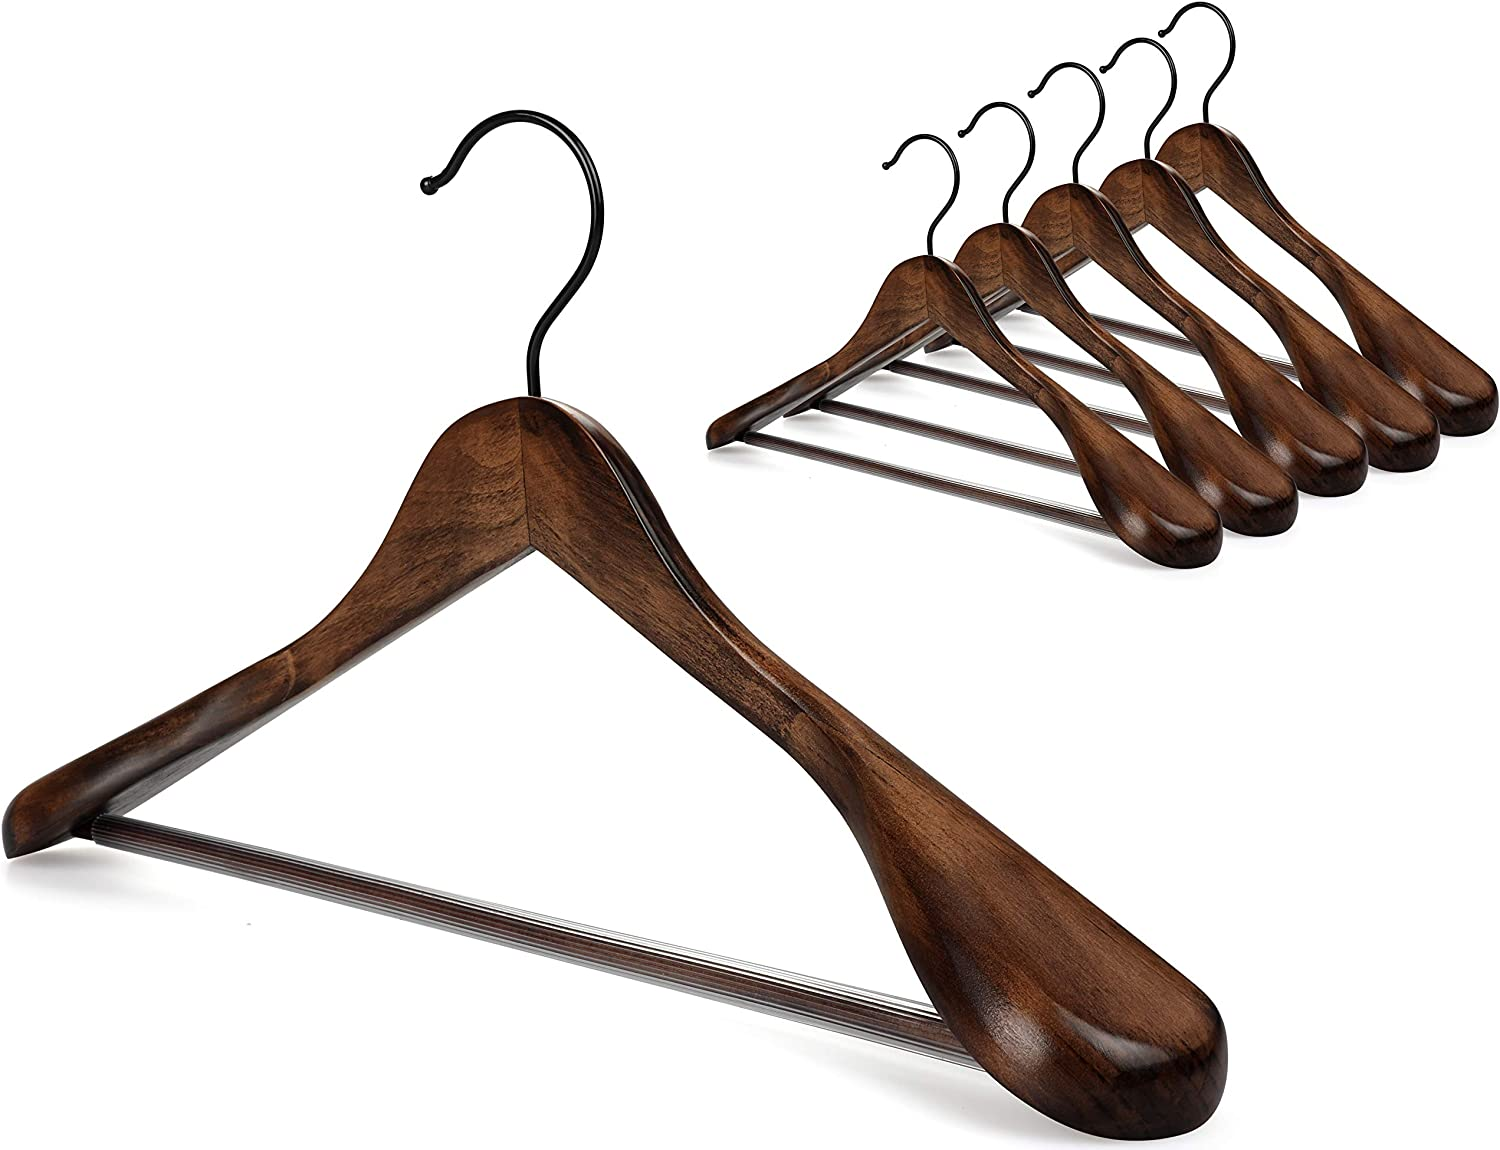 TOPIA HANGER Set San Francisco Mall of 6 Beautiful Wood OFFicial mail order Coat Wooden Han Suit Jacket